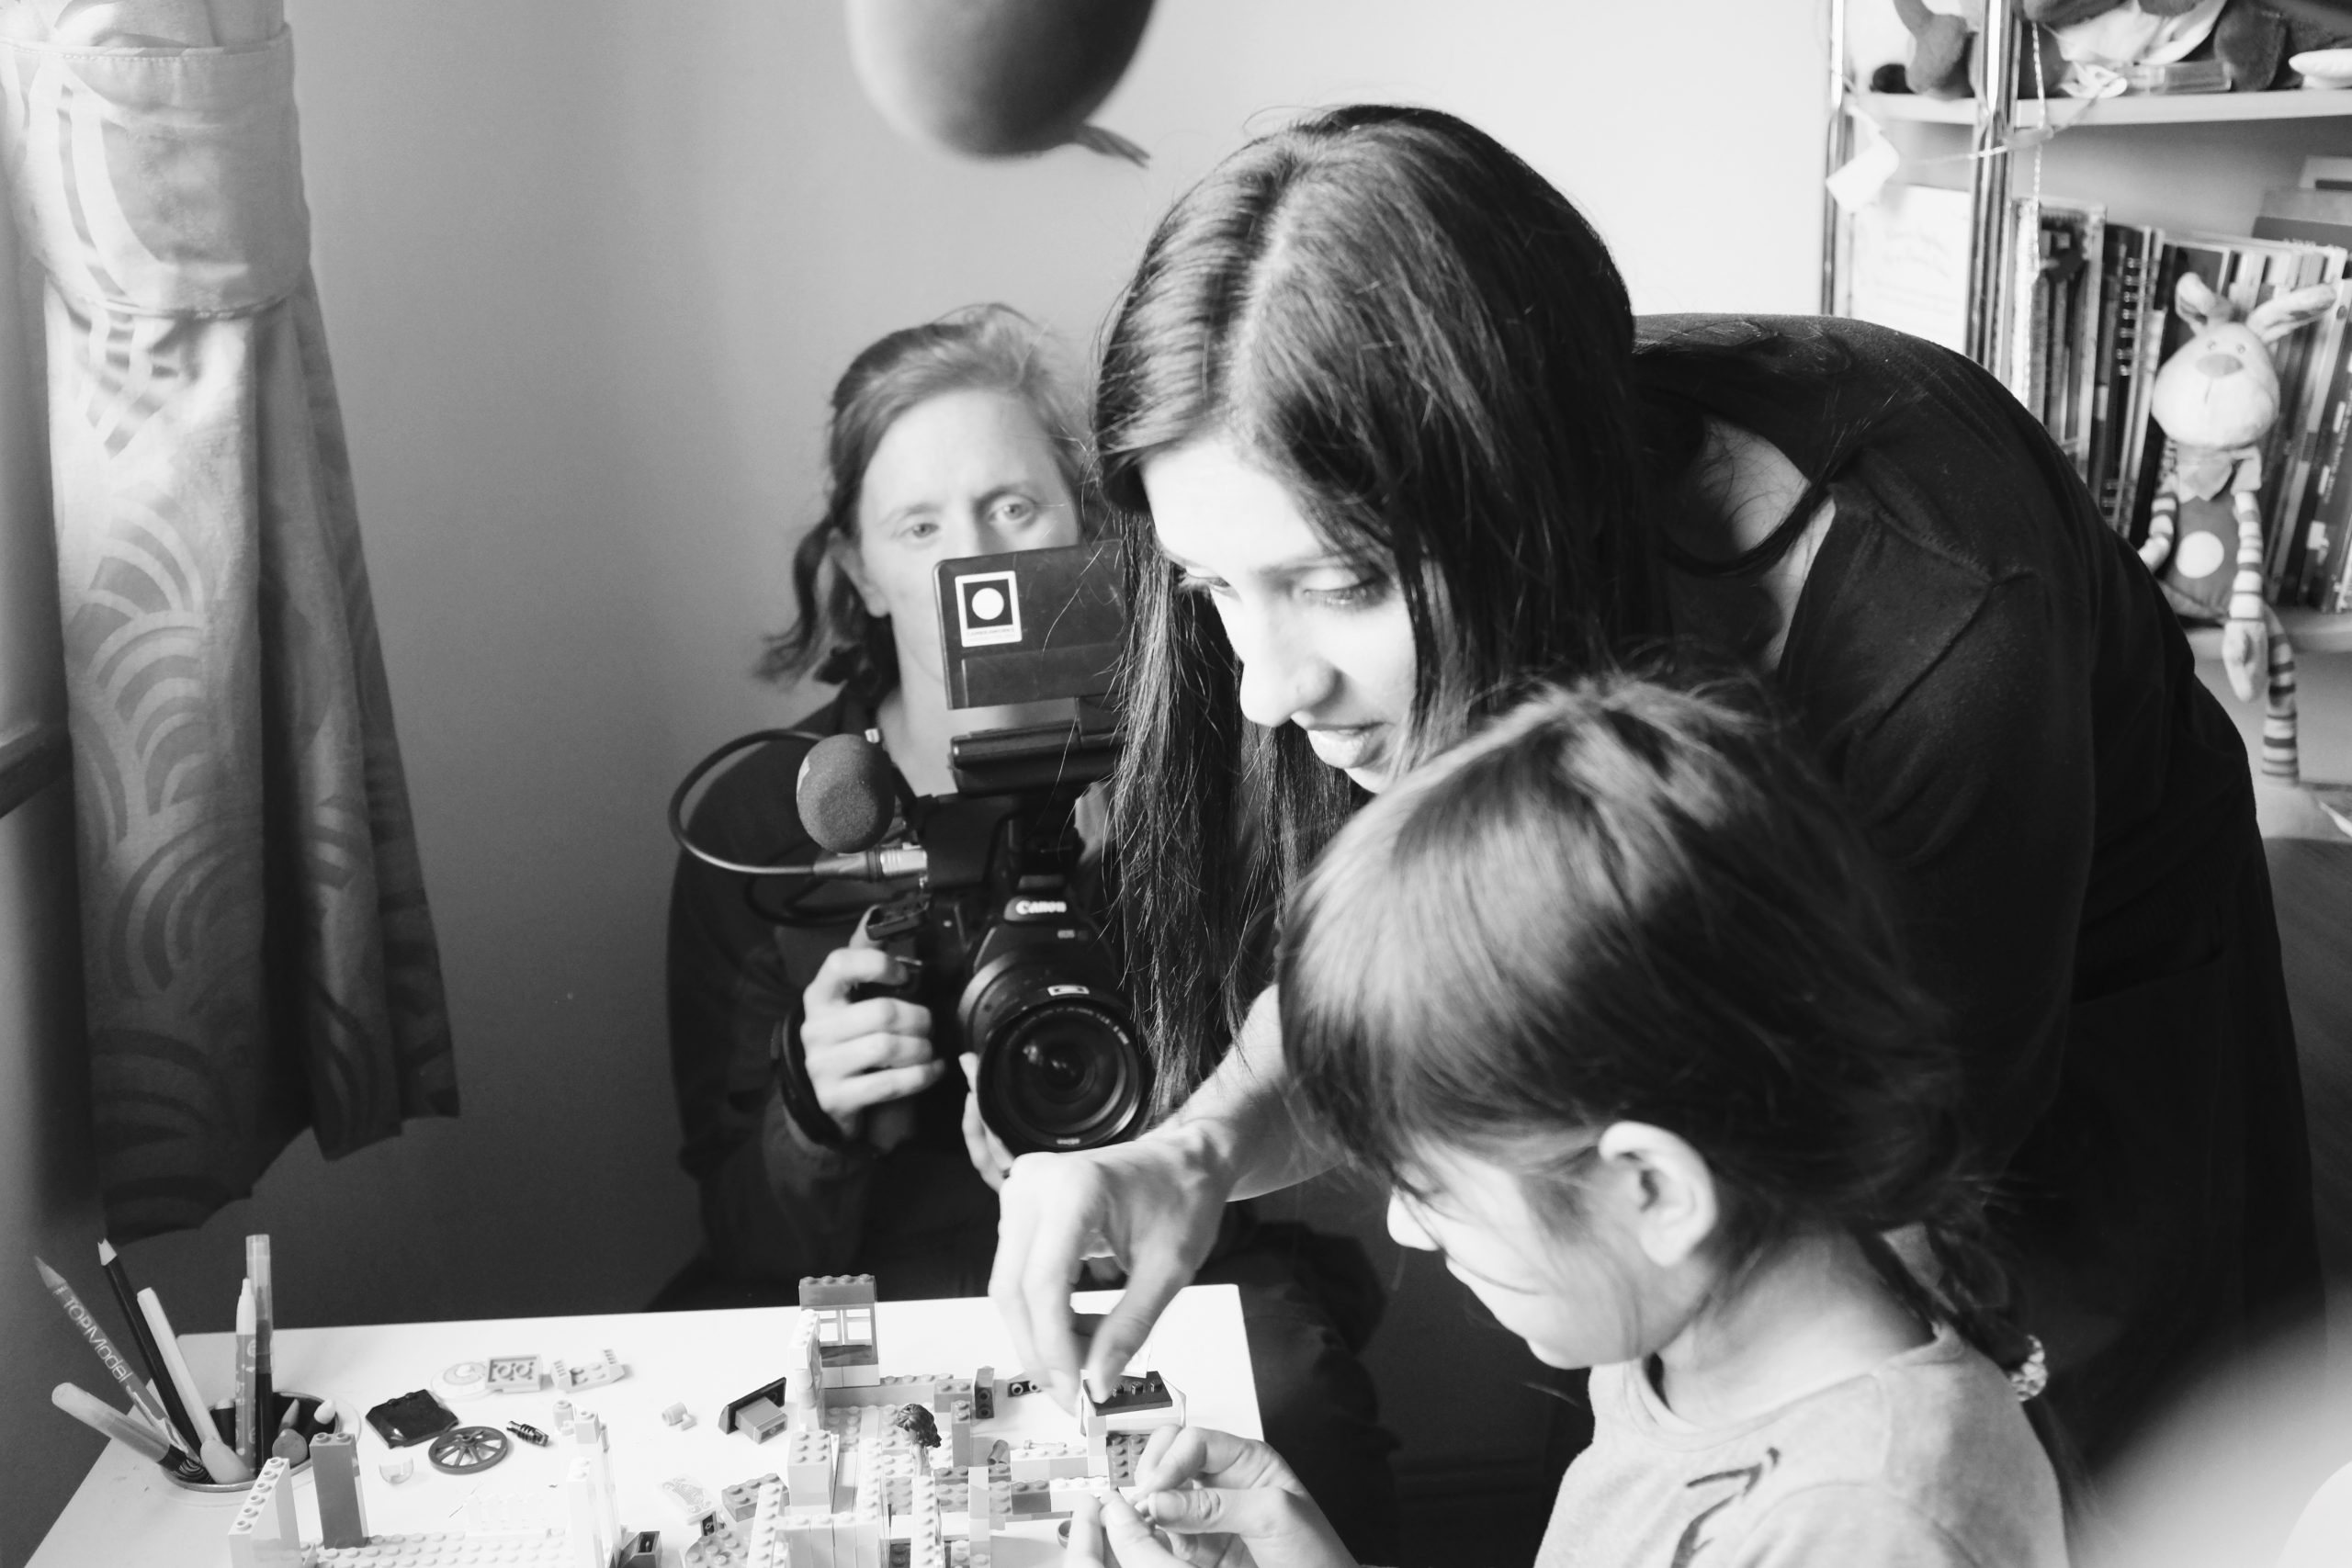 Image of Annemarie Lean-Vercoe on camera, Manjinder directing her daughter, Lyla.